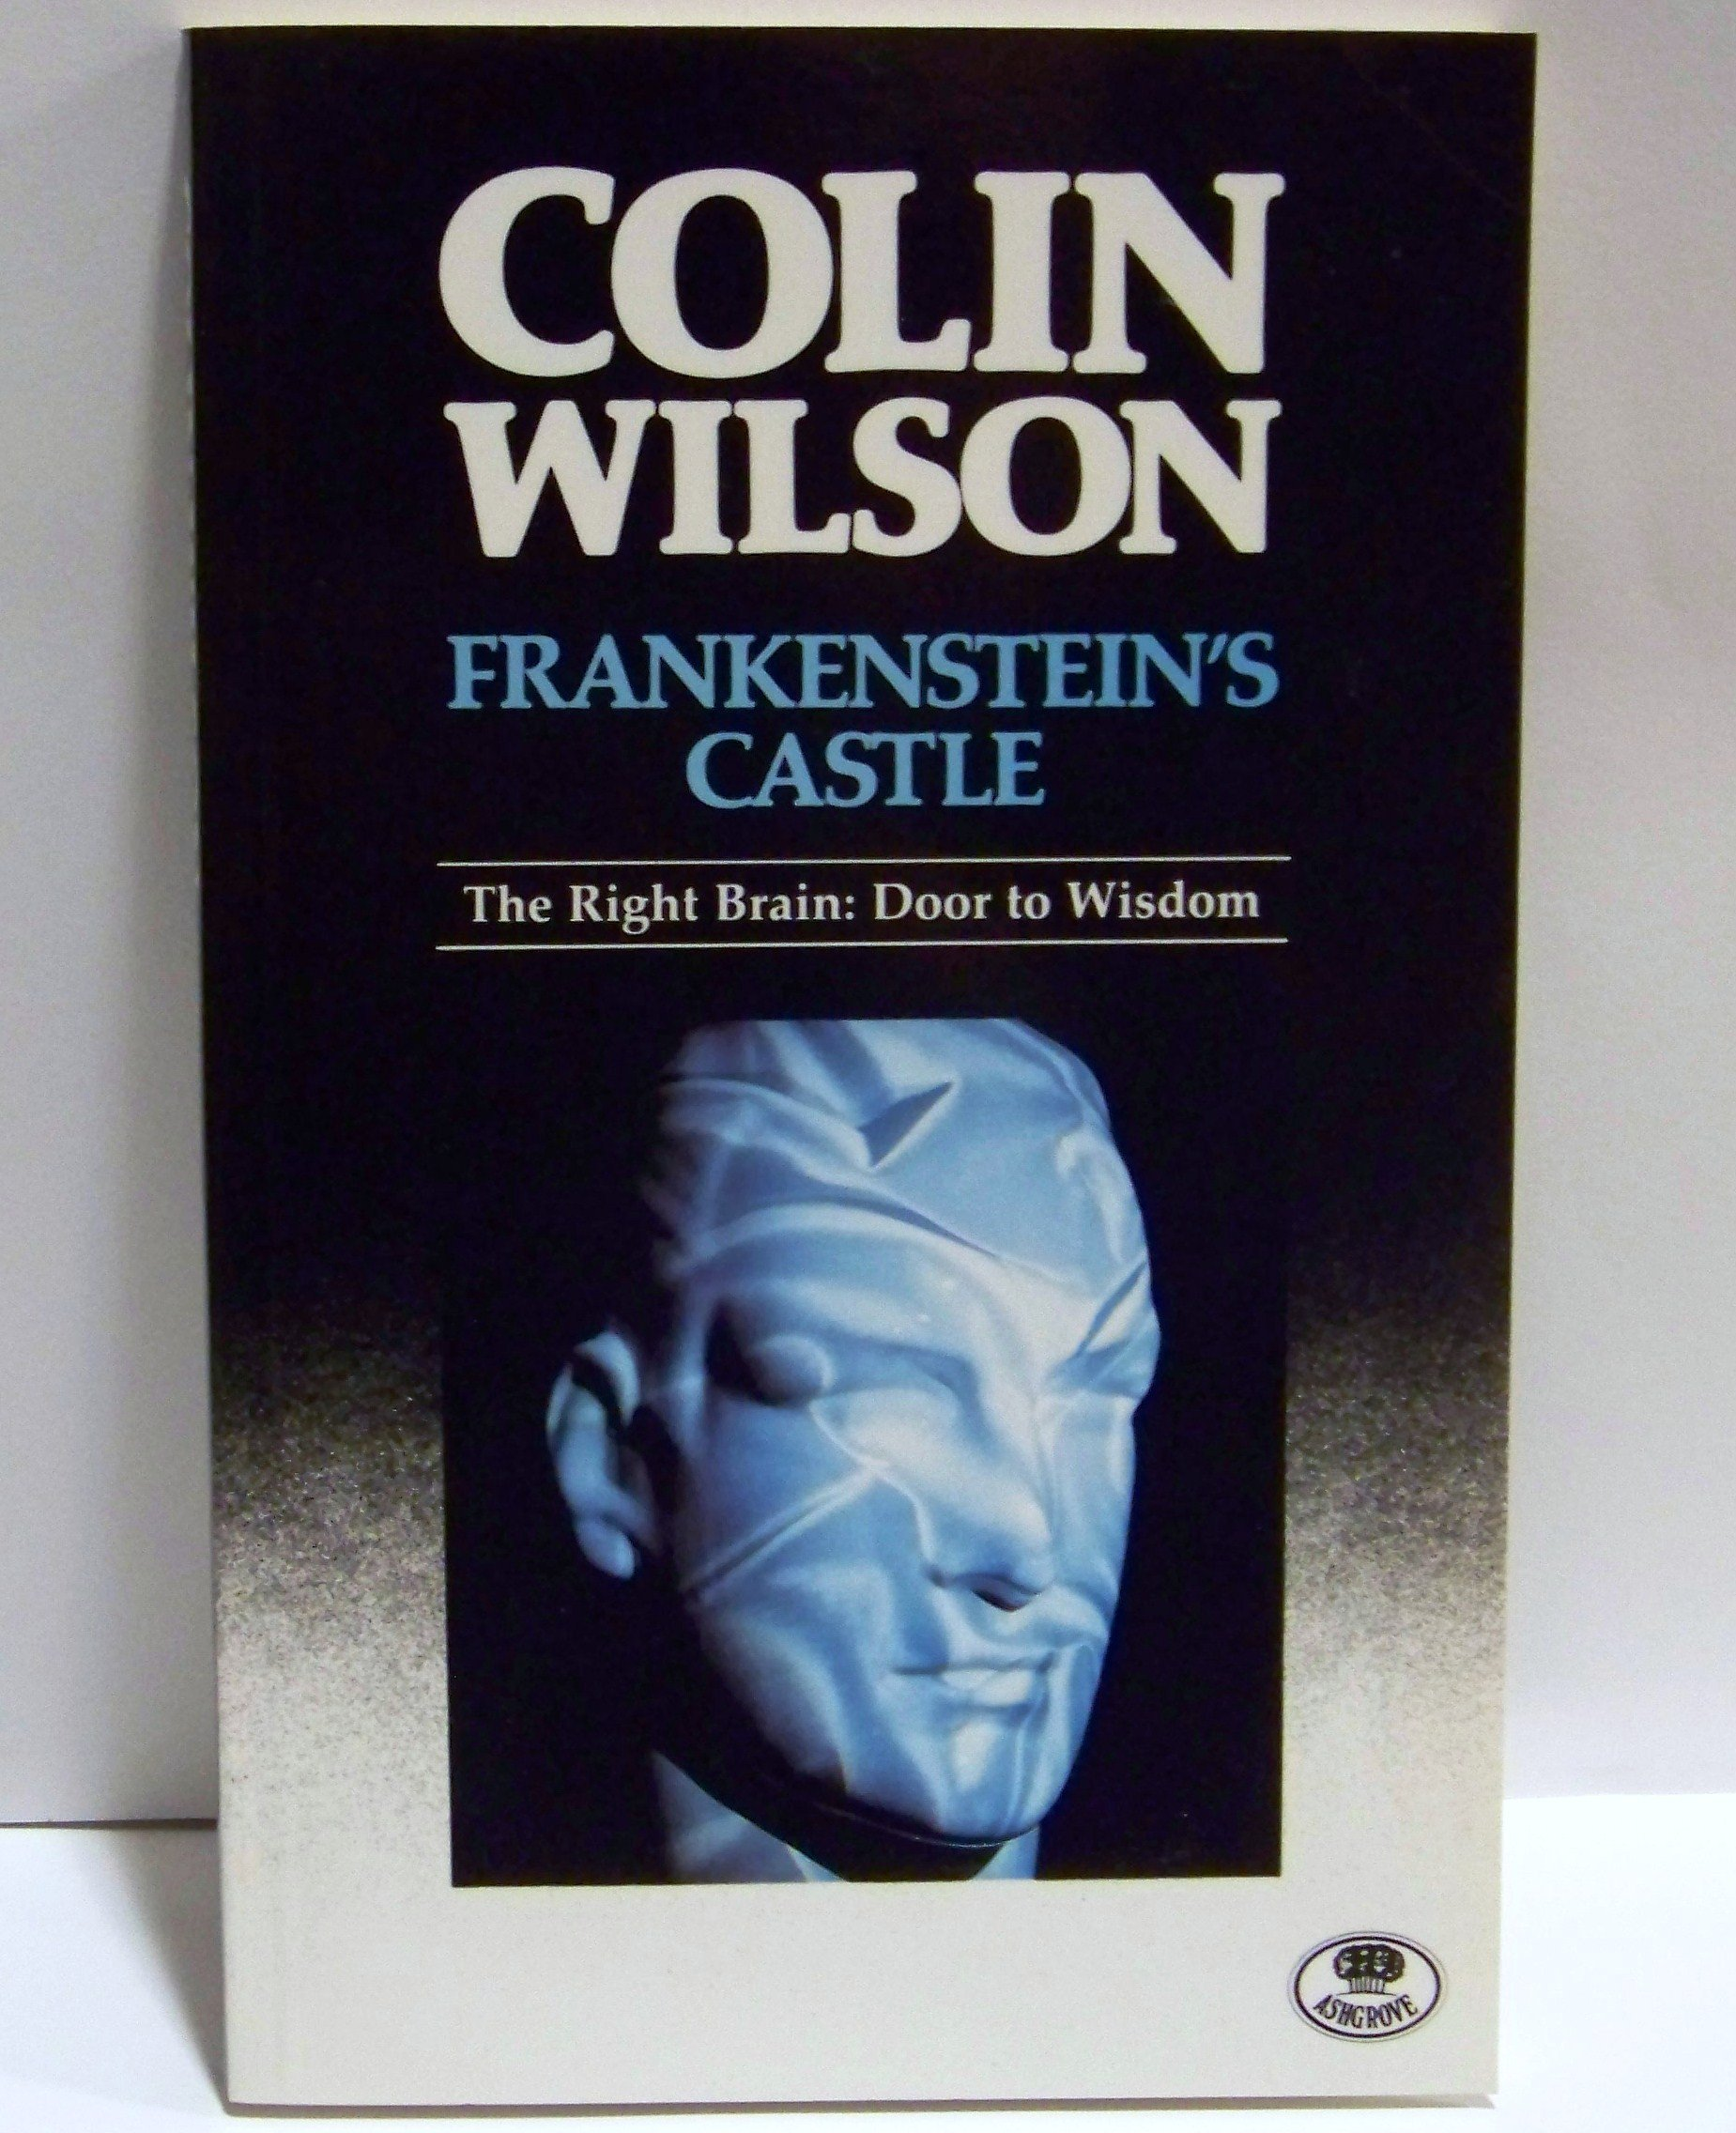 Frankensteinu0027s Castle The Right Brain Door to Wisdom Colin Wilson 9780906798126 Amazon.com Books & Frankensteinu0027s Castle: The Right Brain: Door to Wisdom: Colin ... pezcame.com